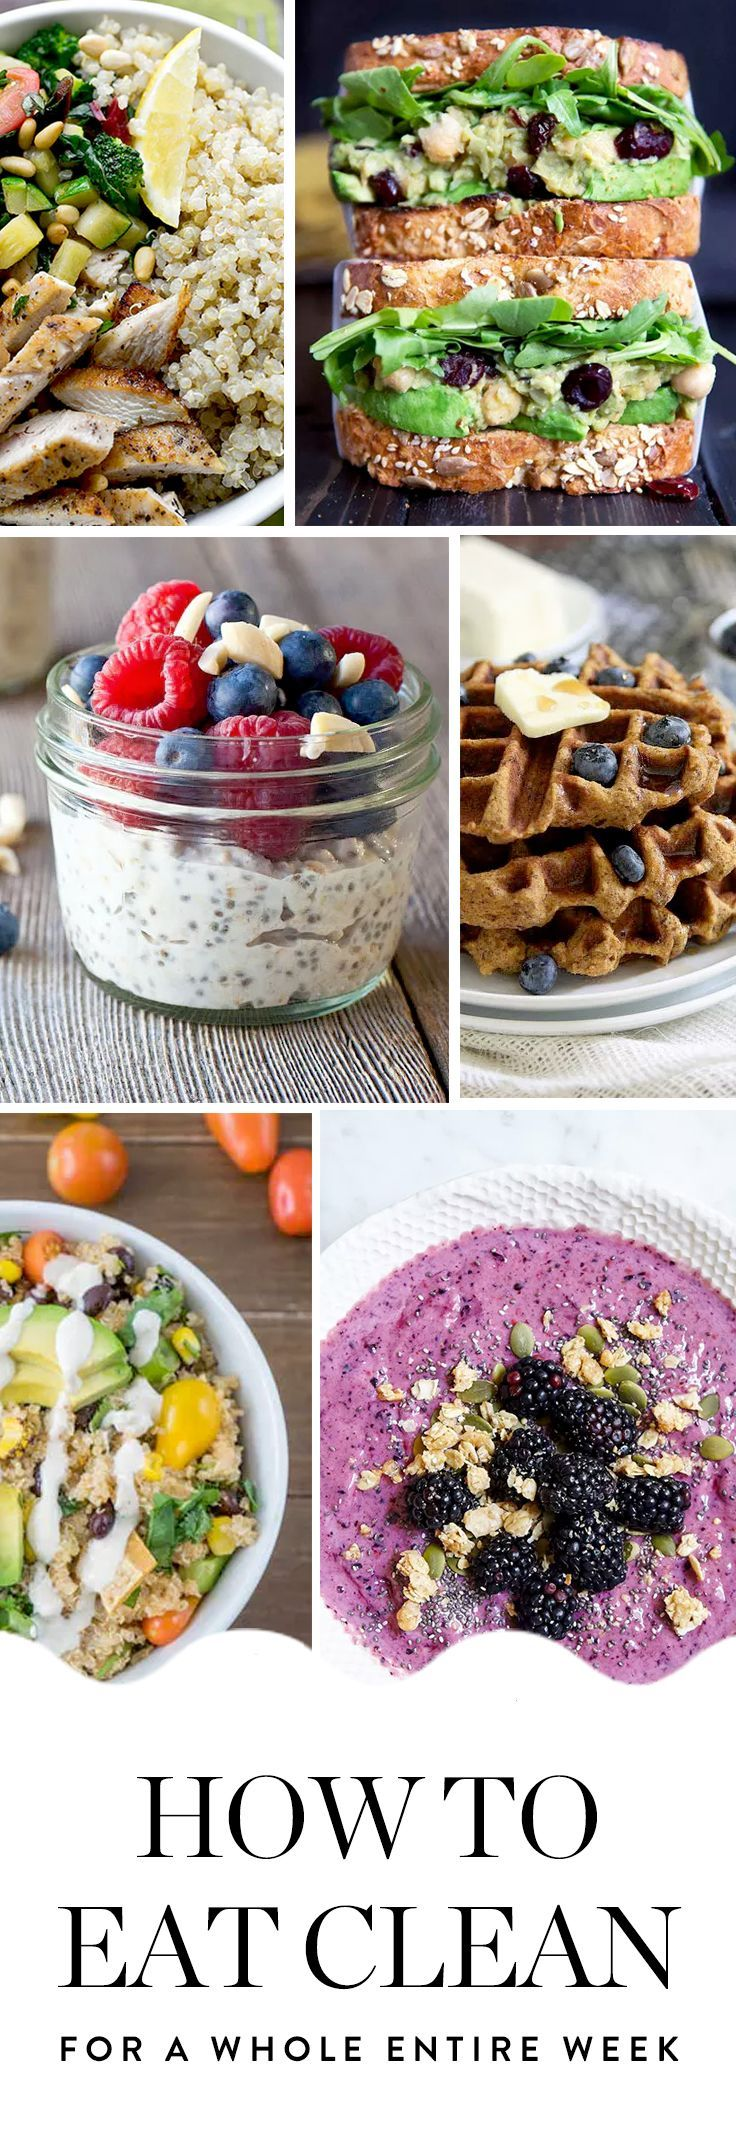 We created a plan that'll help you create 3 clean eating meals a day for 7 days straight. Whether you make one or 21 of these recipes, you're on your way to feeling great.